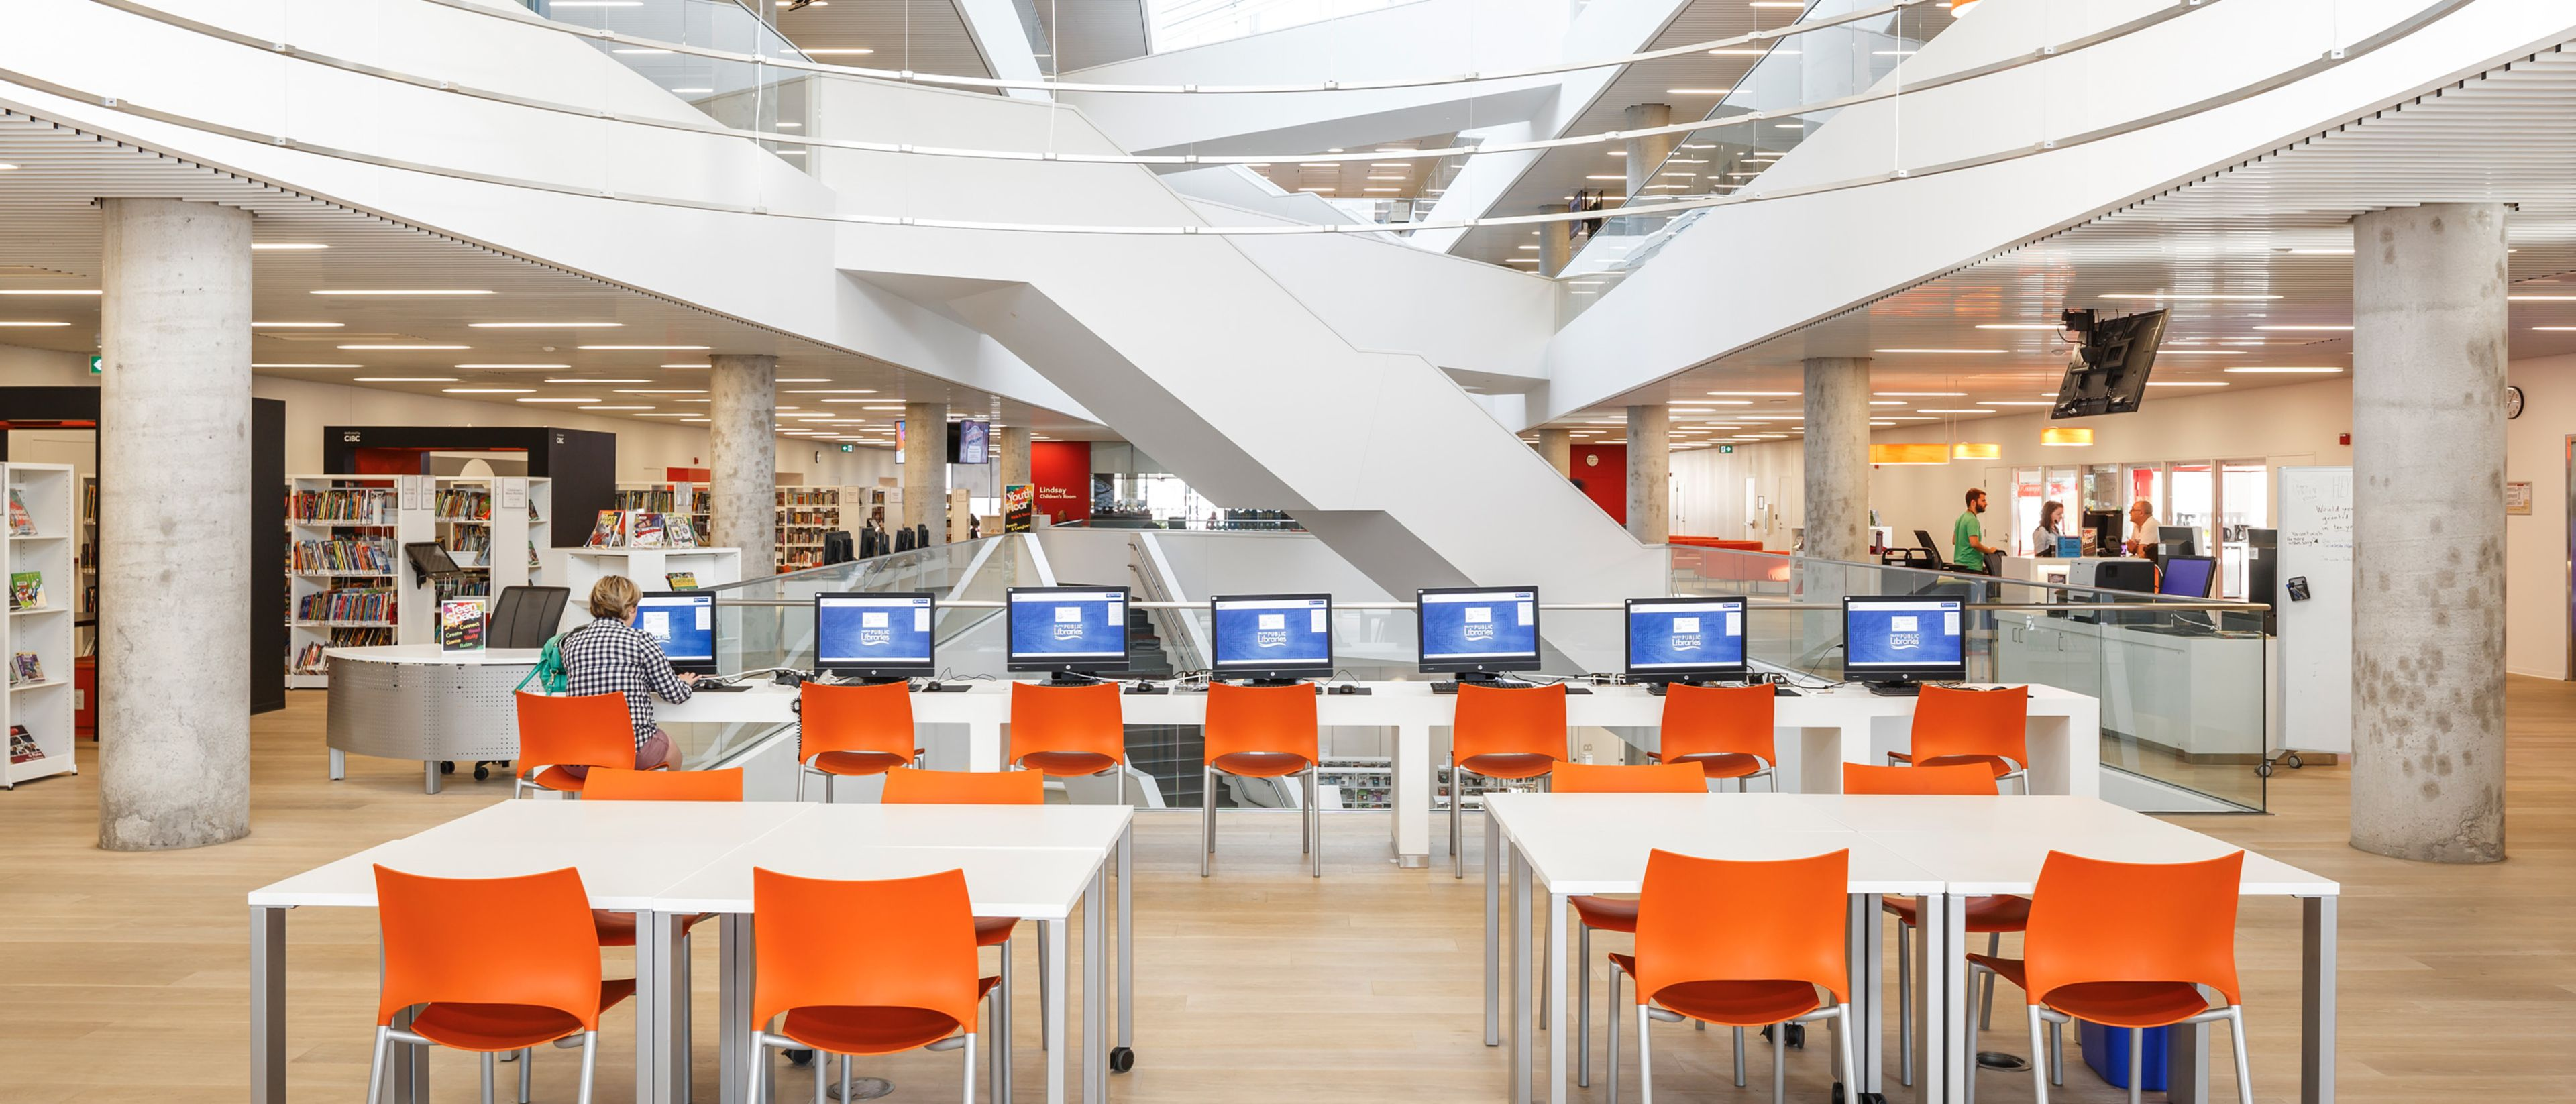 Halifax Central Library main computer lab shows a wide open modern looking space built by ellisdon